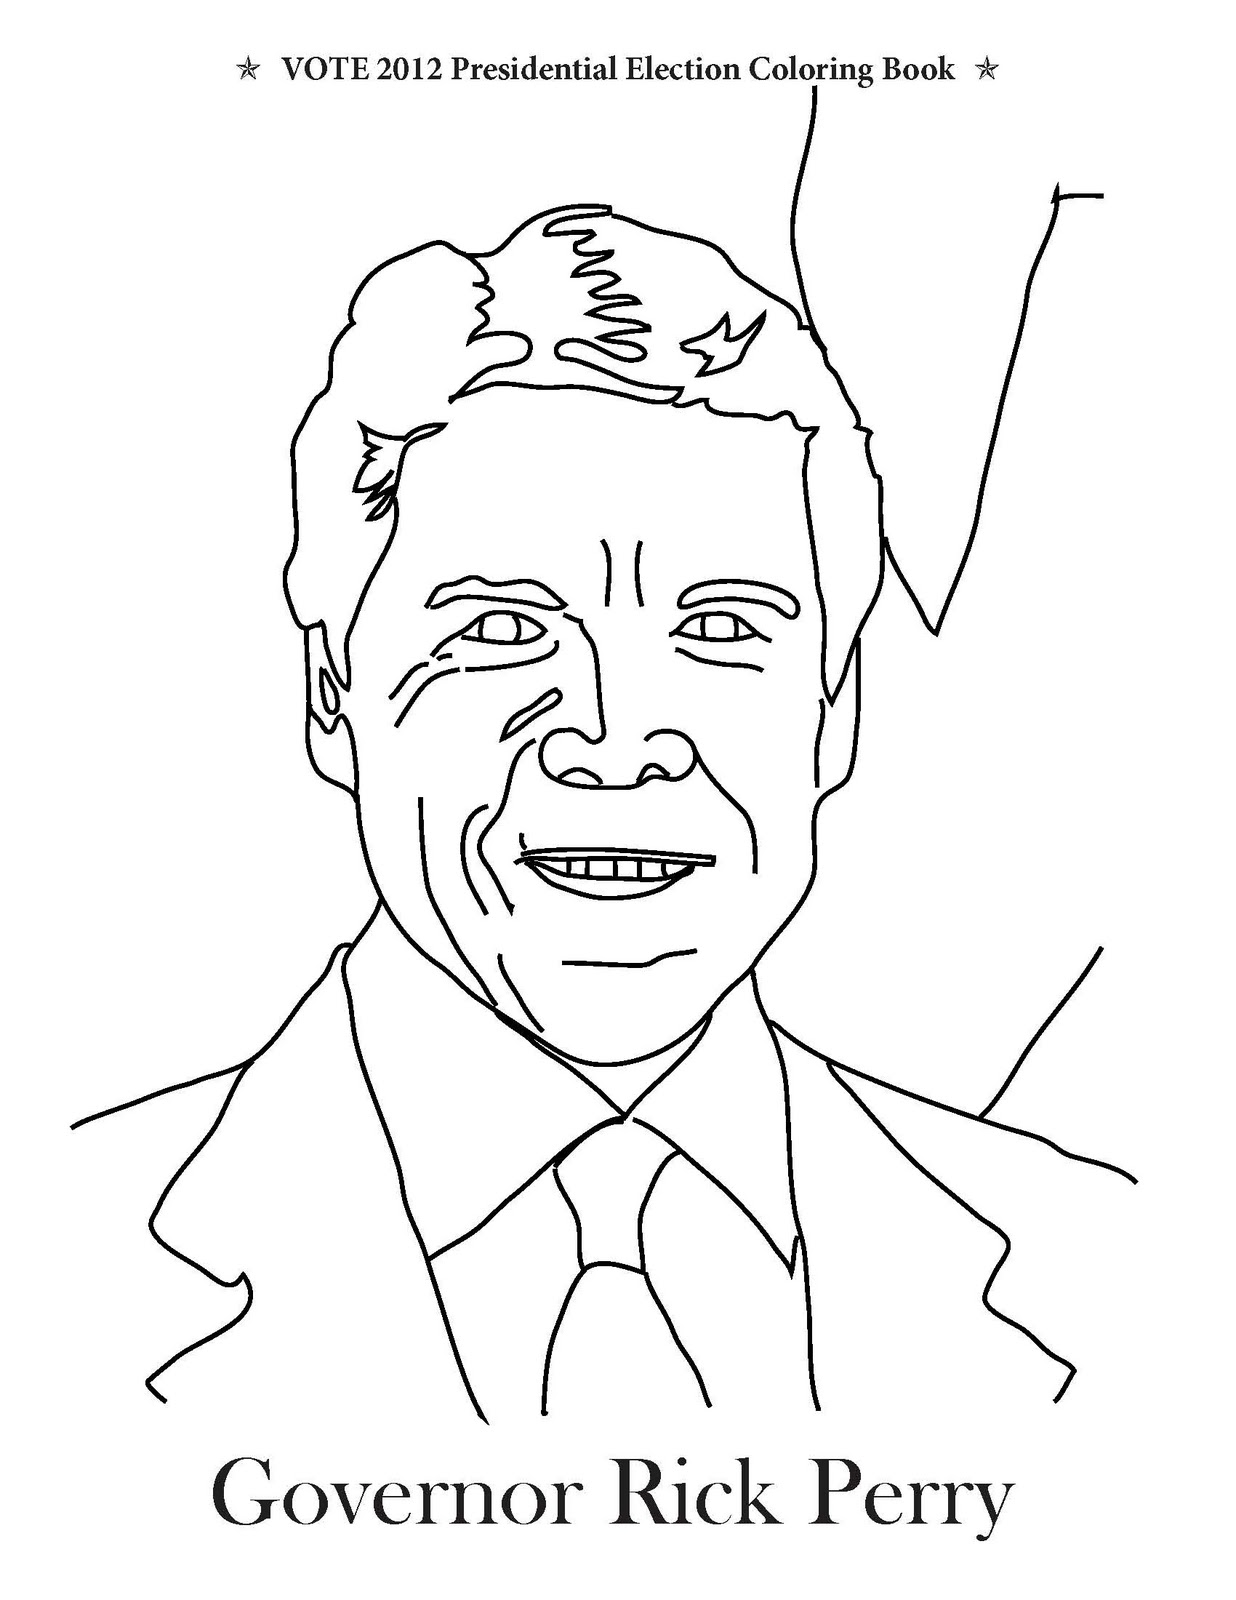 vote 2012 presidential election coloring book rick perry had his